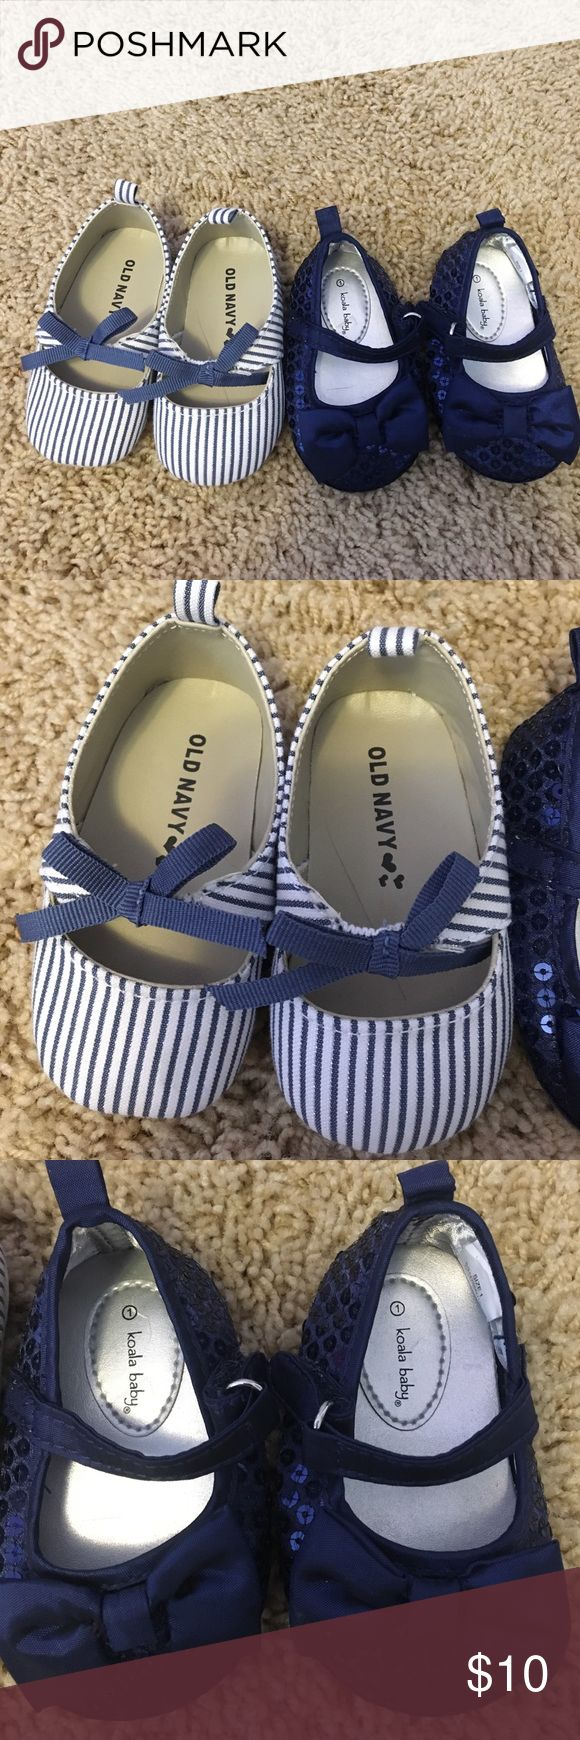 Navy Blue Baby Shoes Two pairs of navy blue baby girl shoes size 1. Shoes